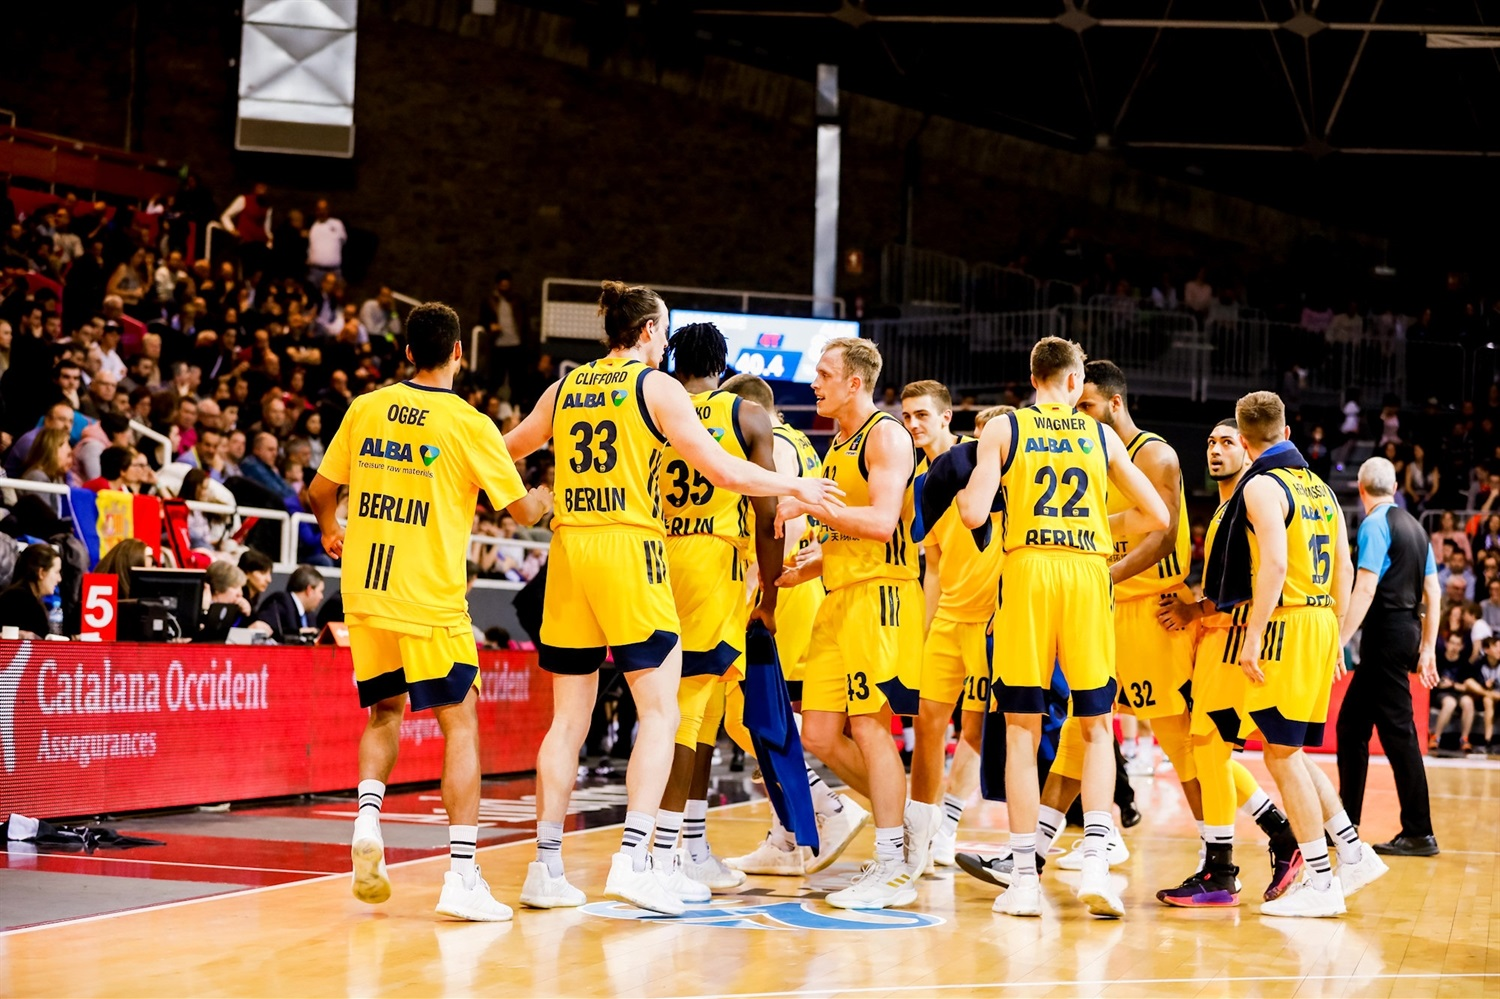 ALBA Berlin celebrates (photo Marti Imatge - Andorra) - EC18